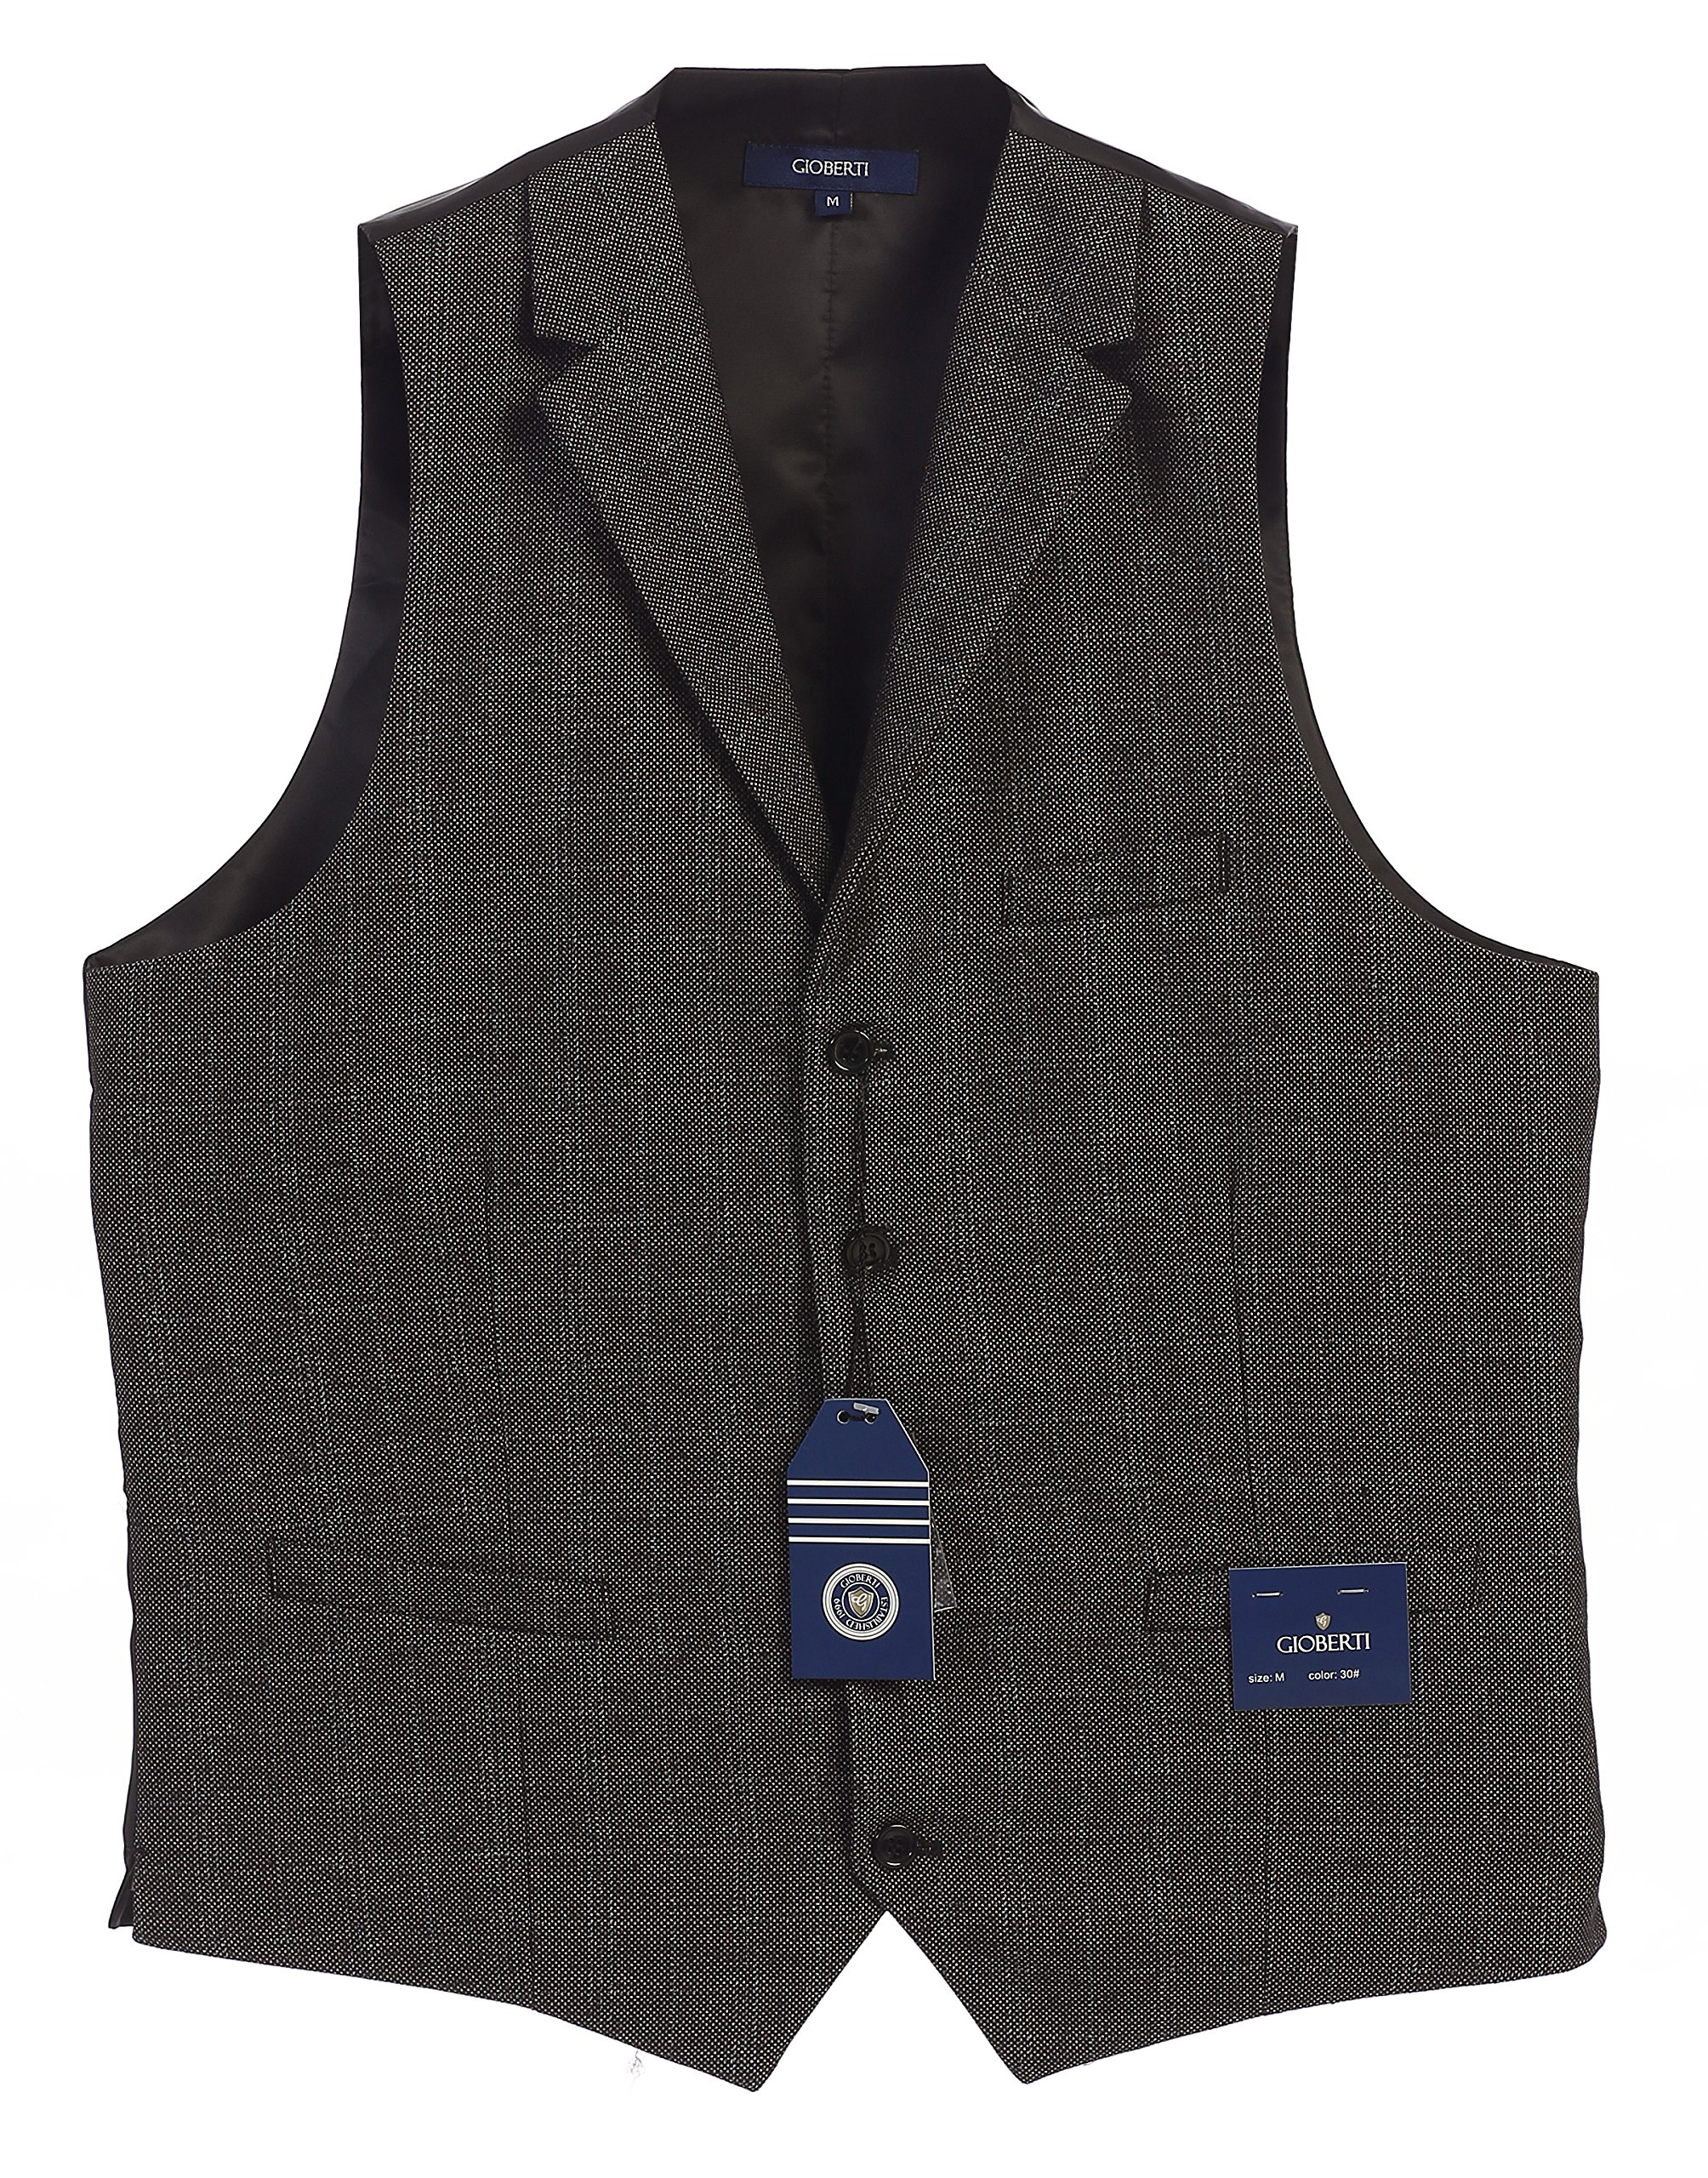 Gioberti Men's 5 Button Tailored Collar Formal Tweed Suit Vest, Gray barleycorn, X Large